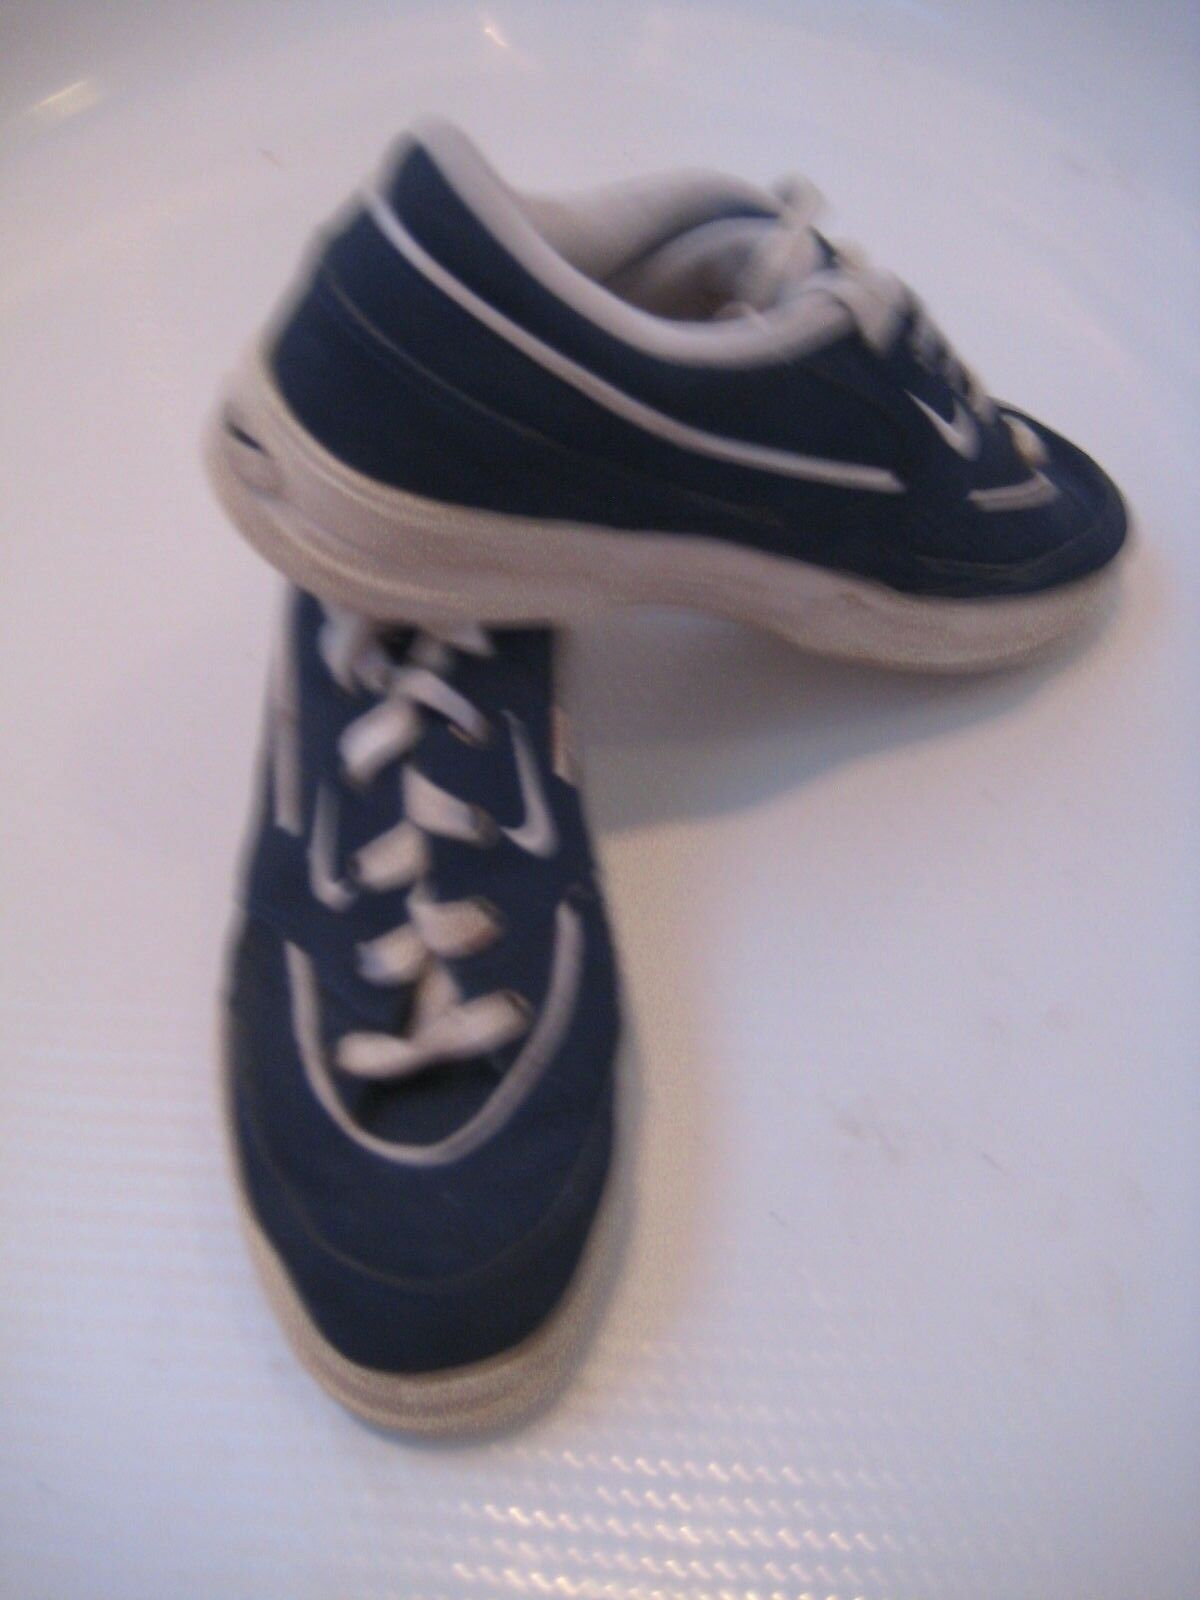 Vintage Nike Casual Walking Athletic Navy Shoes Women's 7 38 Retro Sneakers EUC Special limited time